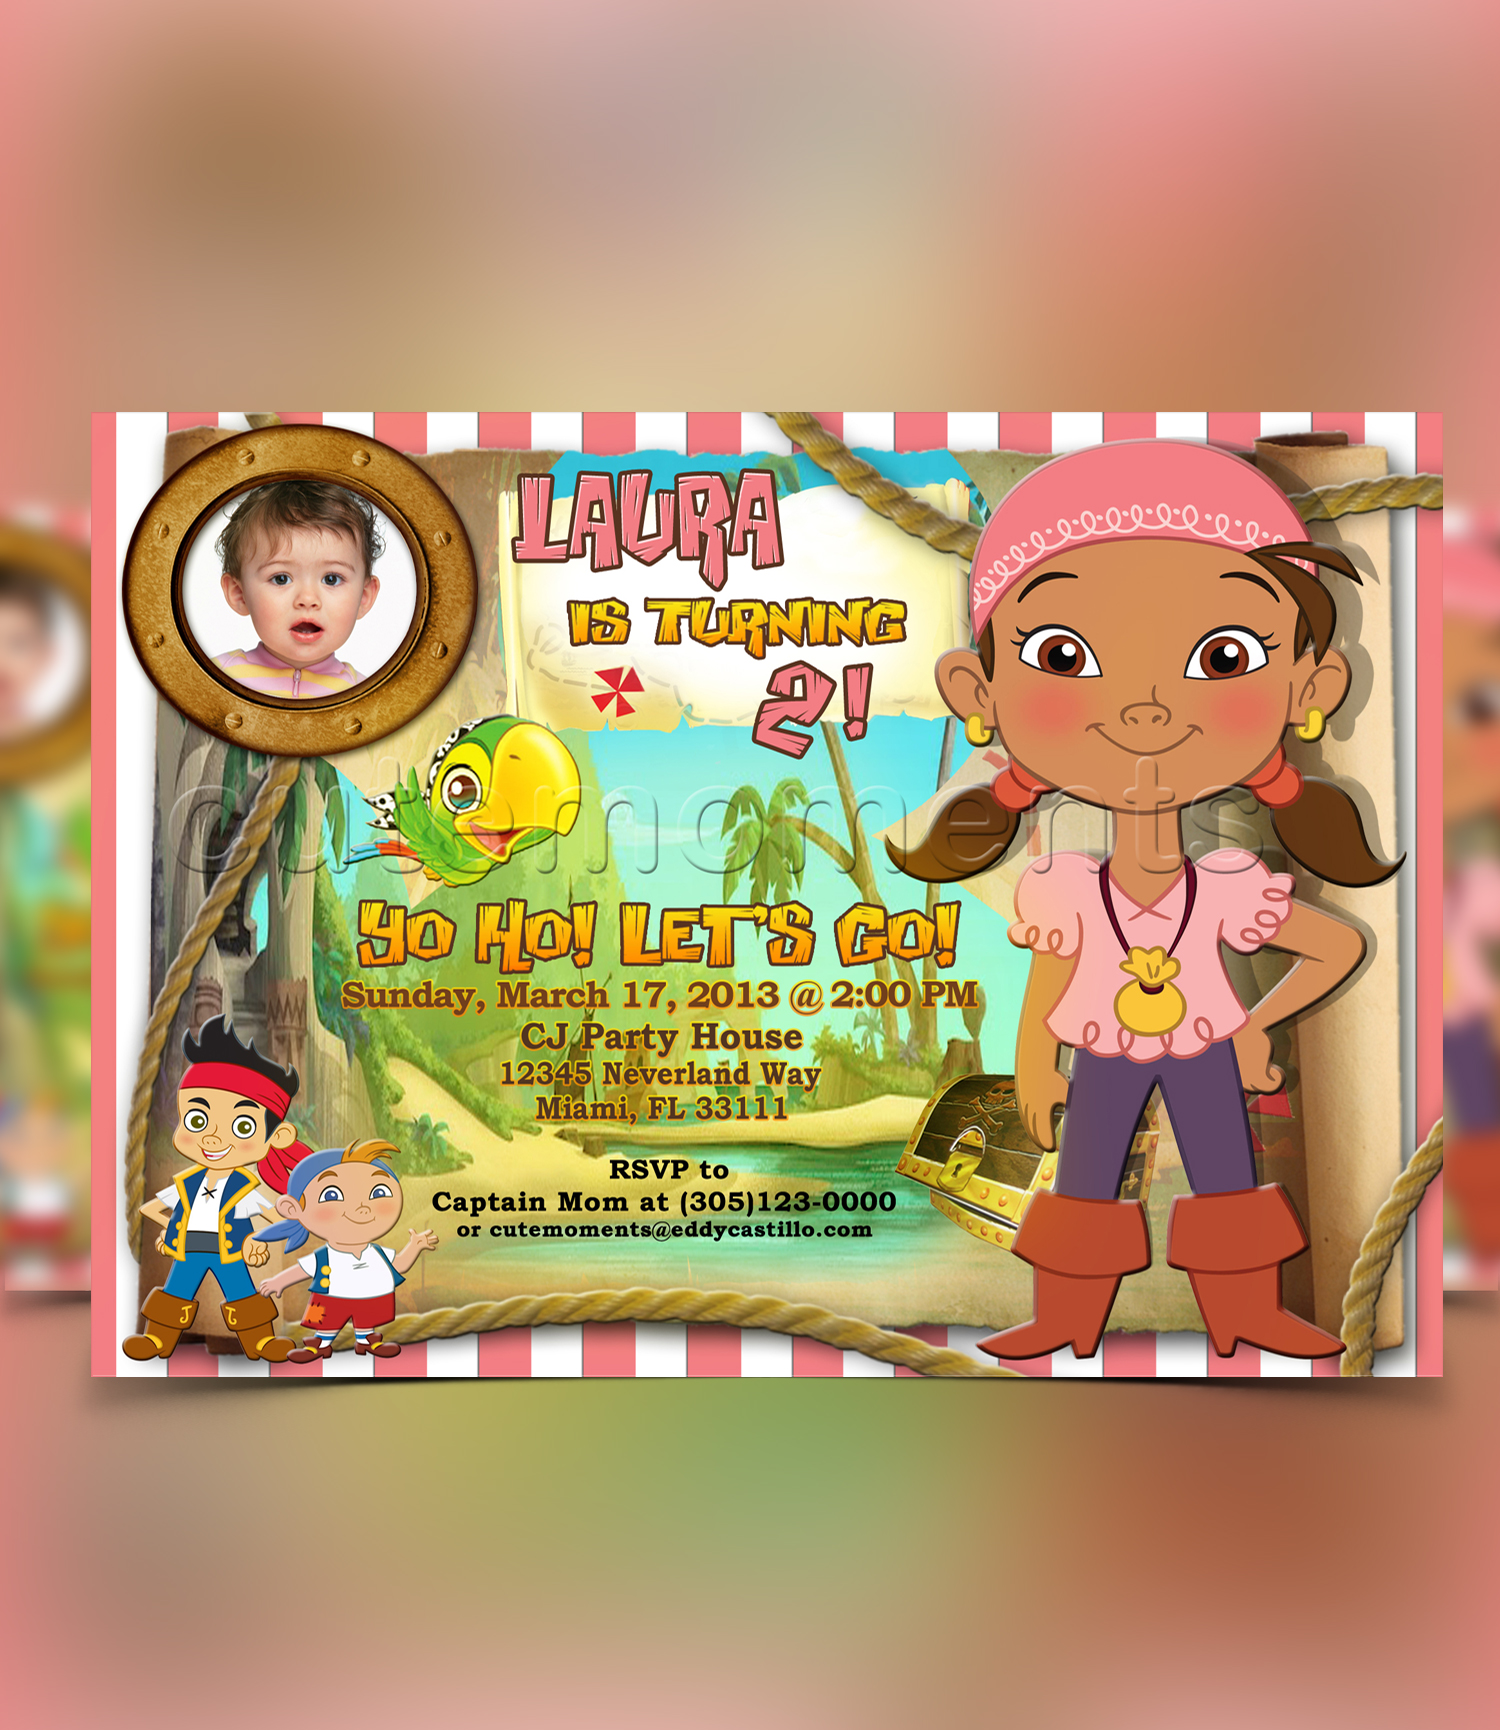 Izzy and the NeverLand Invitation